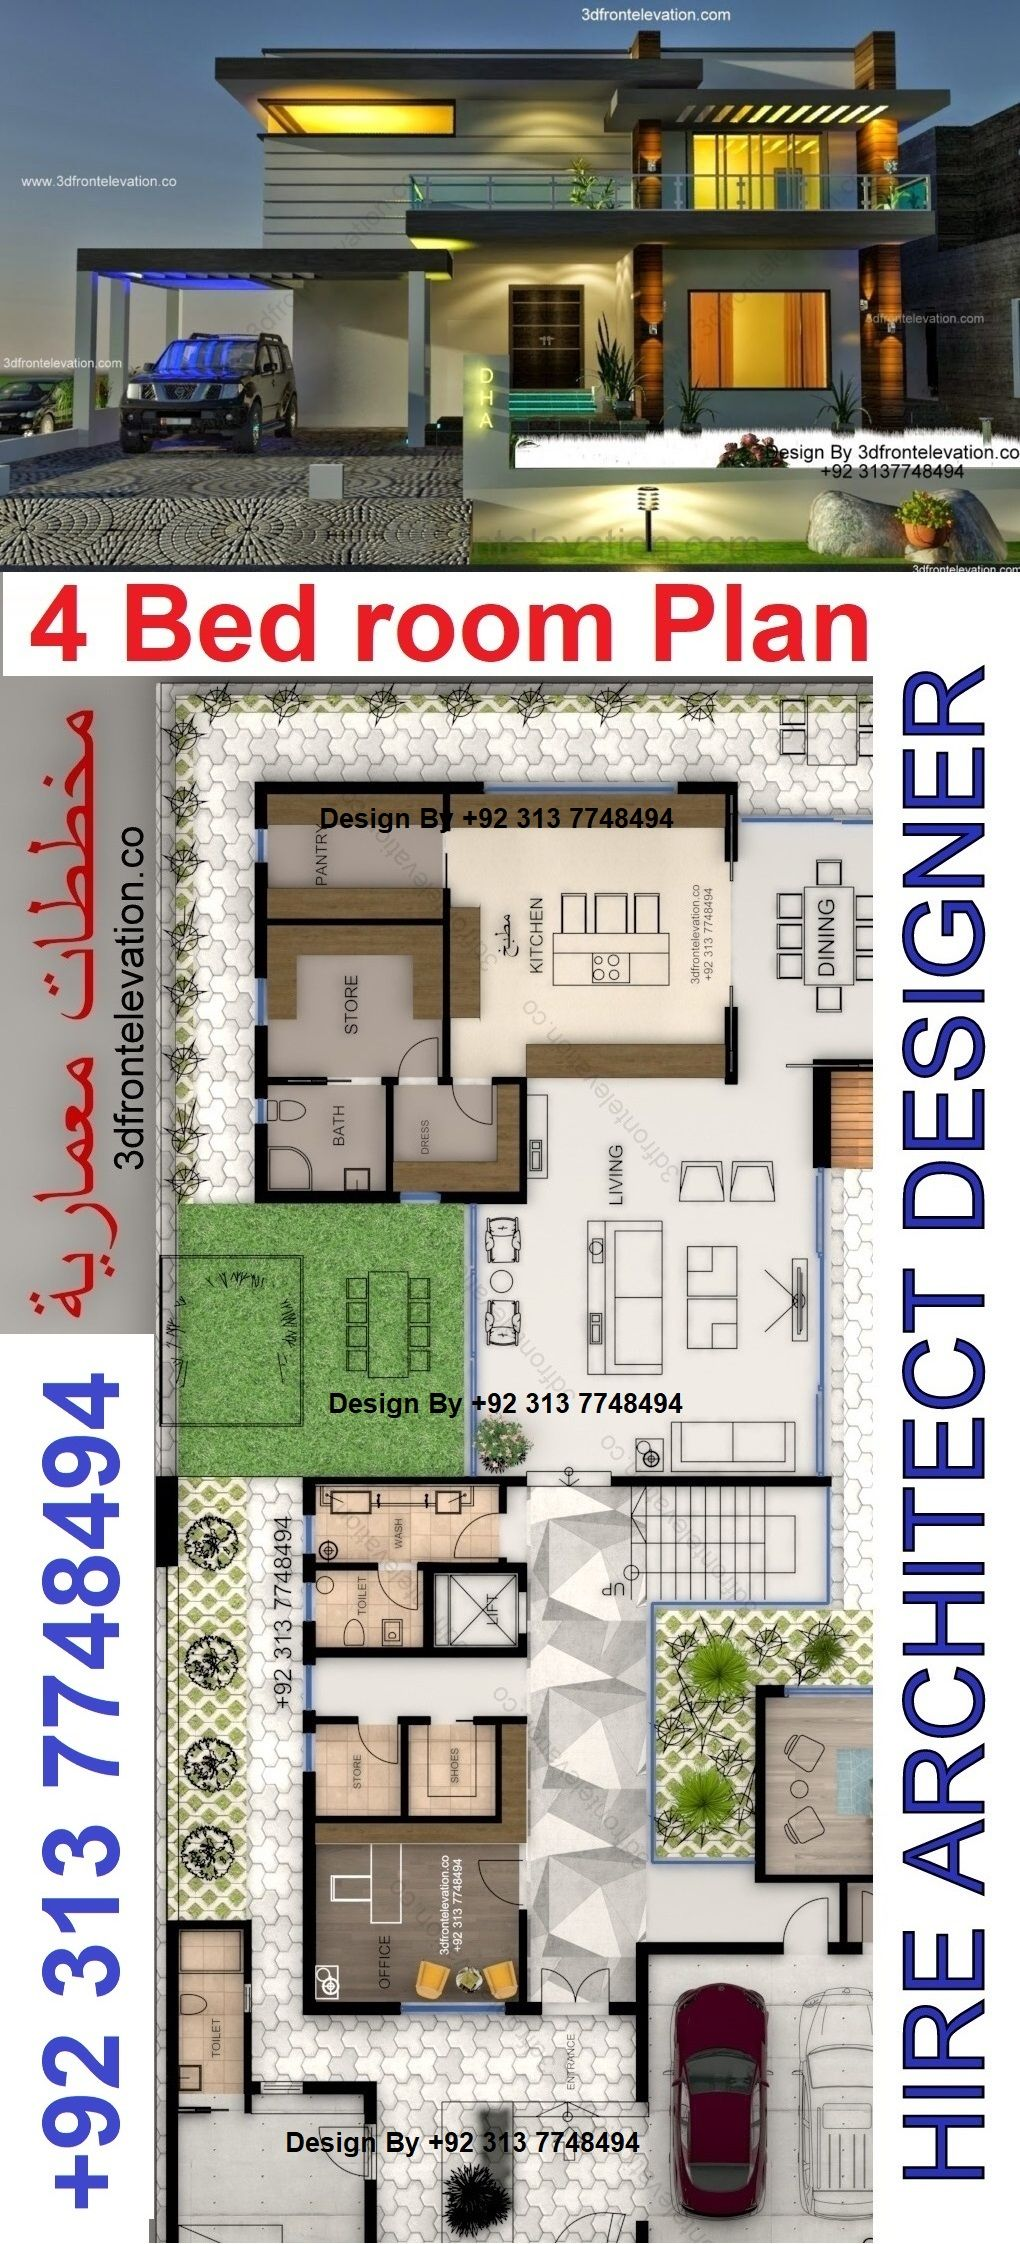 4 Bed Rooms With House Plan Design Online At 3dfrontelevation Co In 2020 House Plans Home Design Plans Plan Design